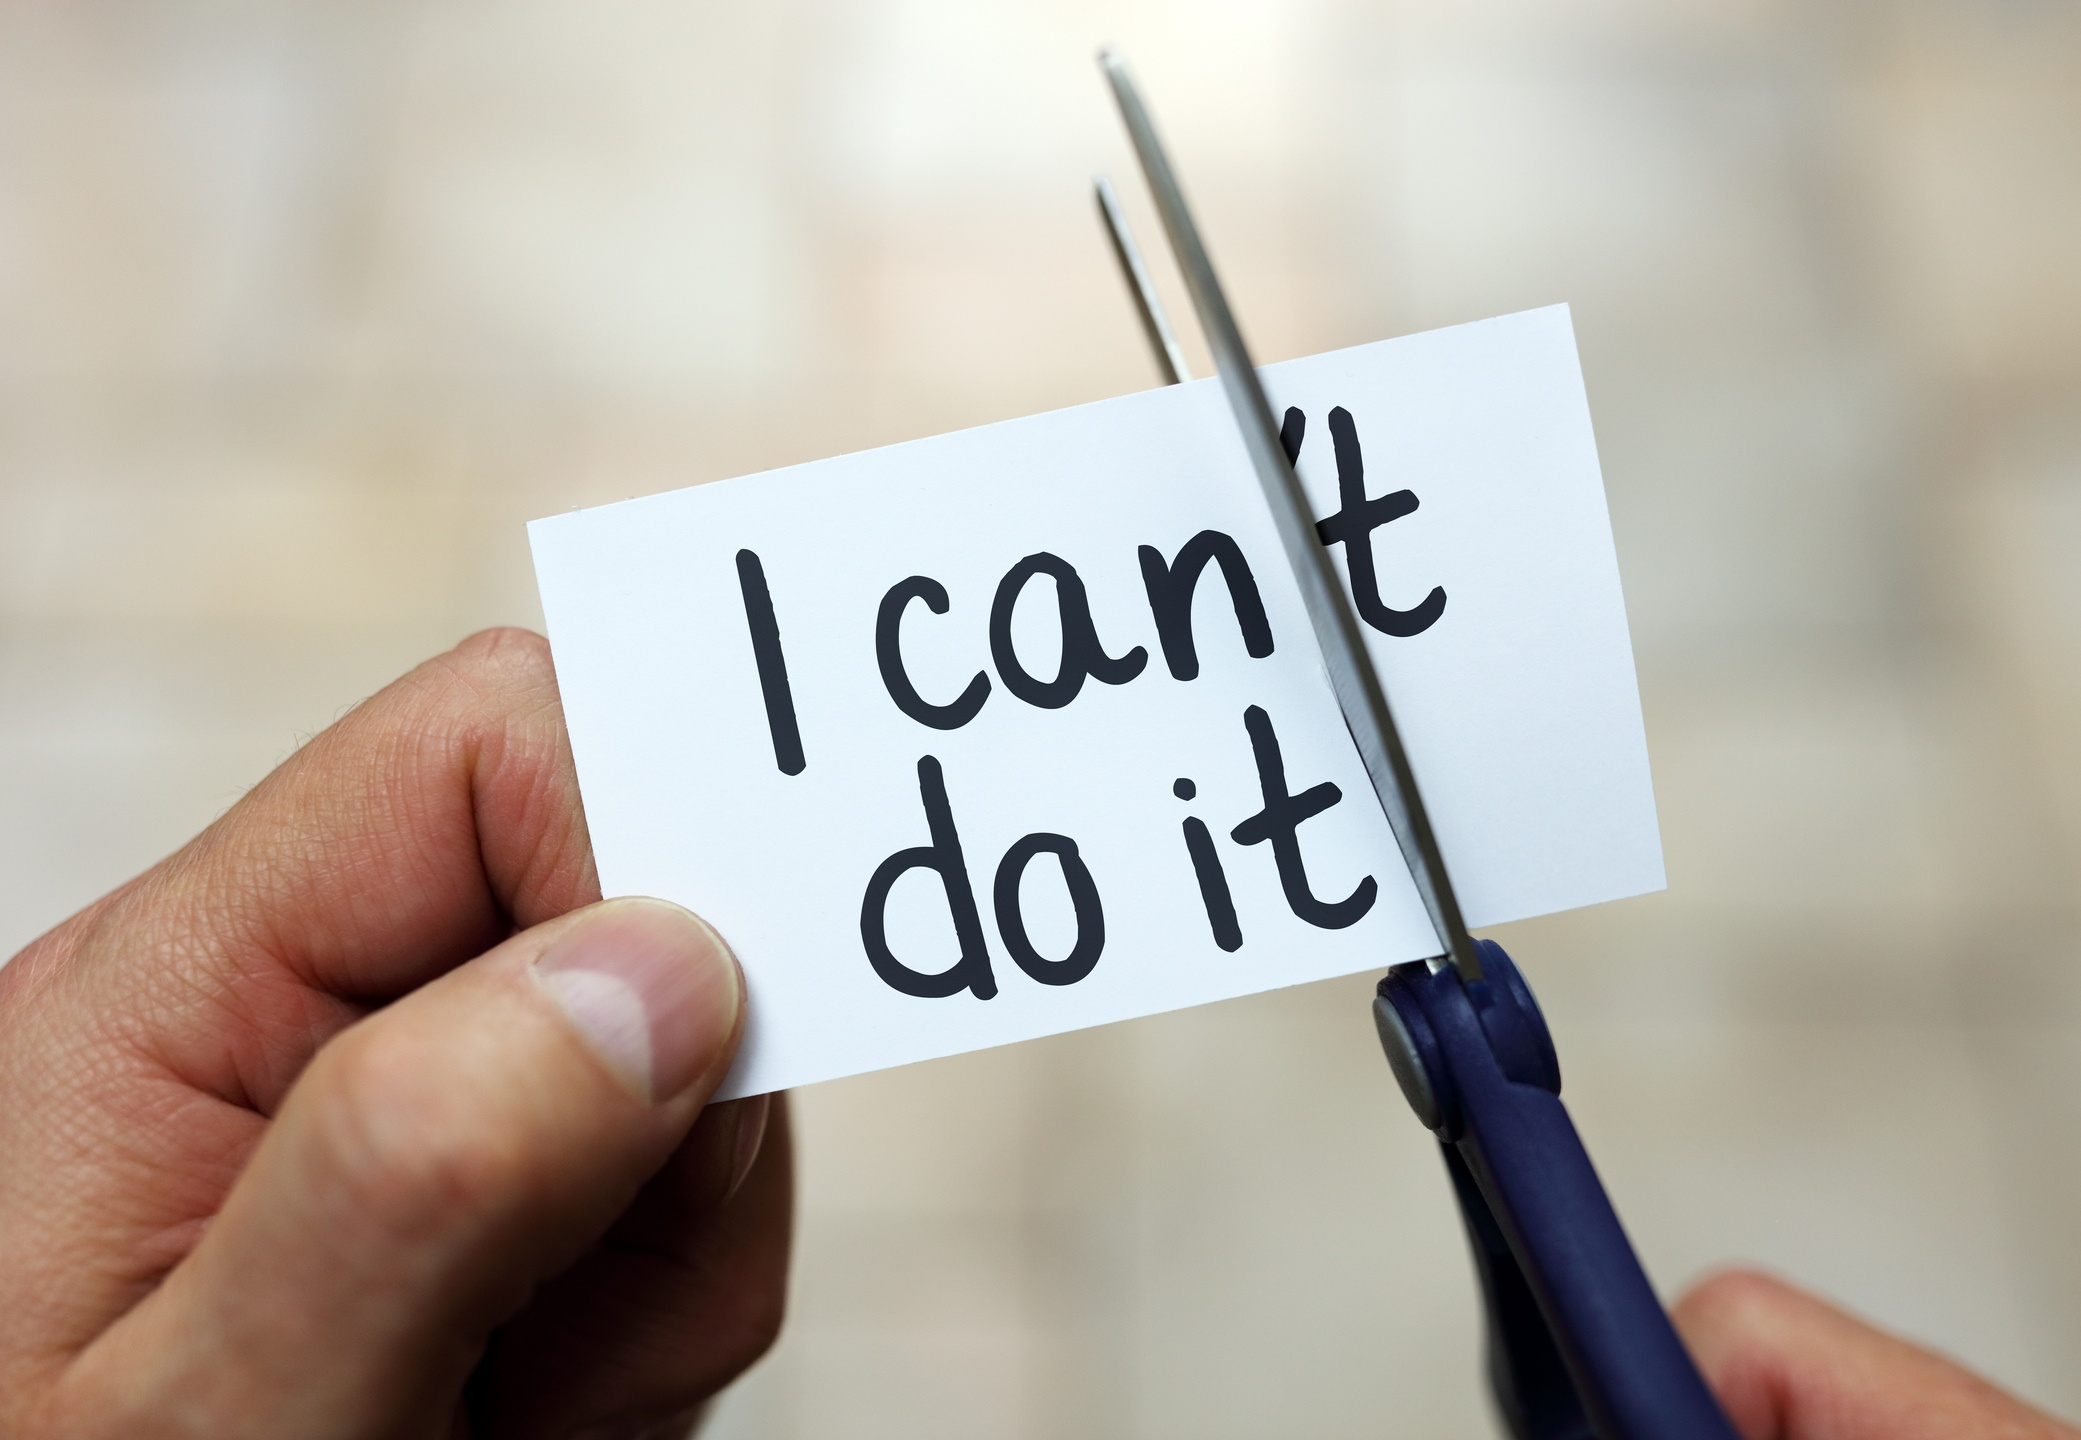 ThinkstockPhotos-I can do it.jpg